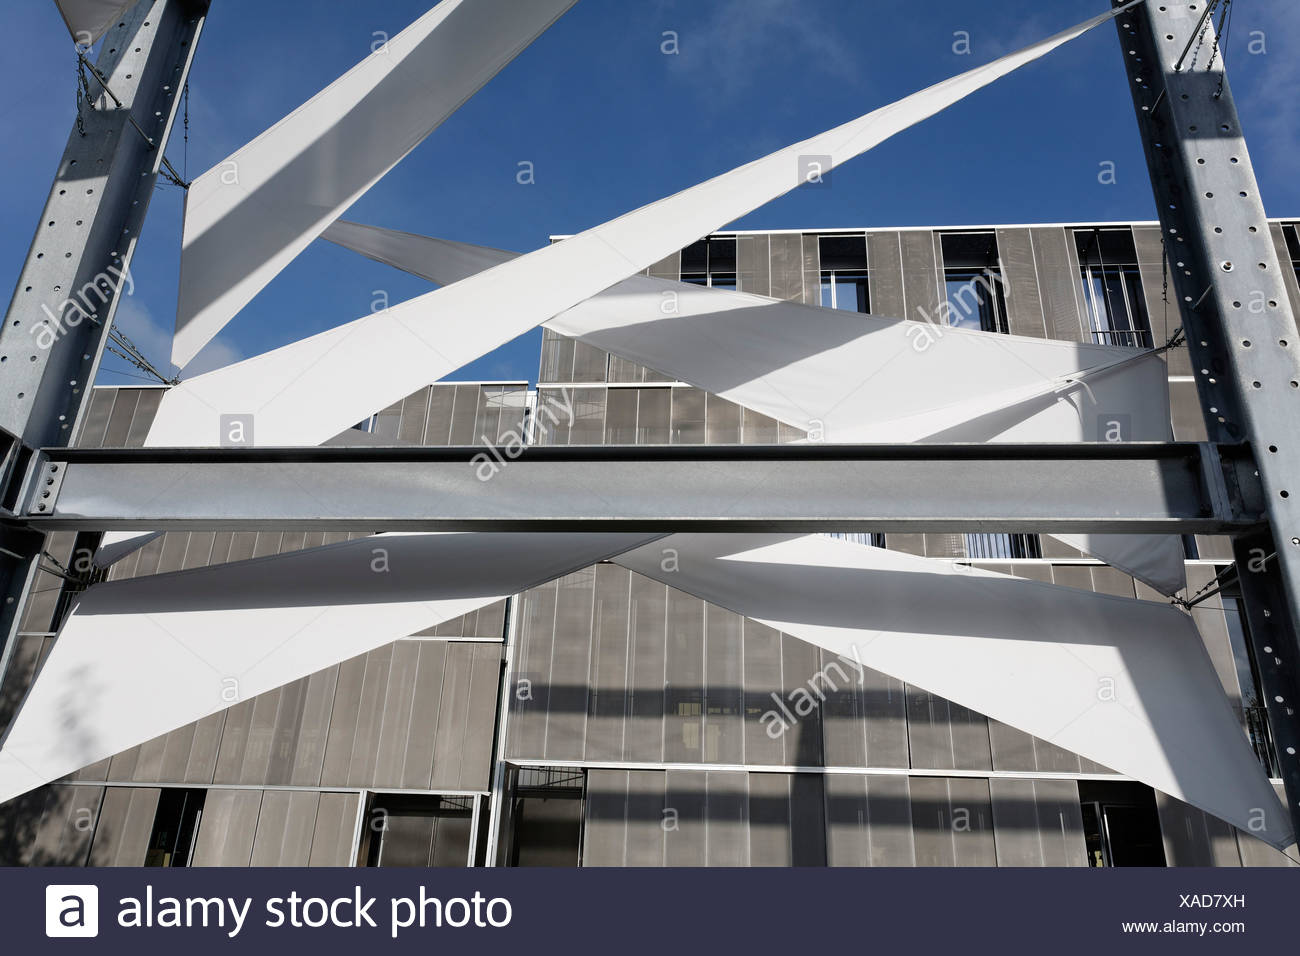 Segel Pavilion, Exhibit of the Faculty of Civil Engineering, Bauhaus-University Weimar, Weimar, Thuringia, Germany, Europe - Stock Image